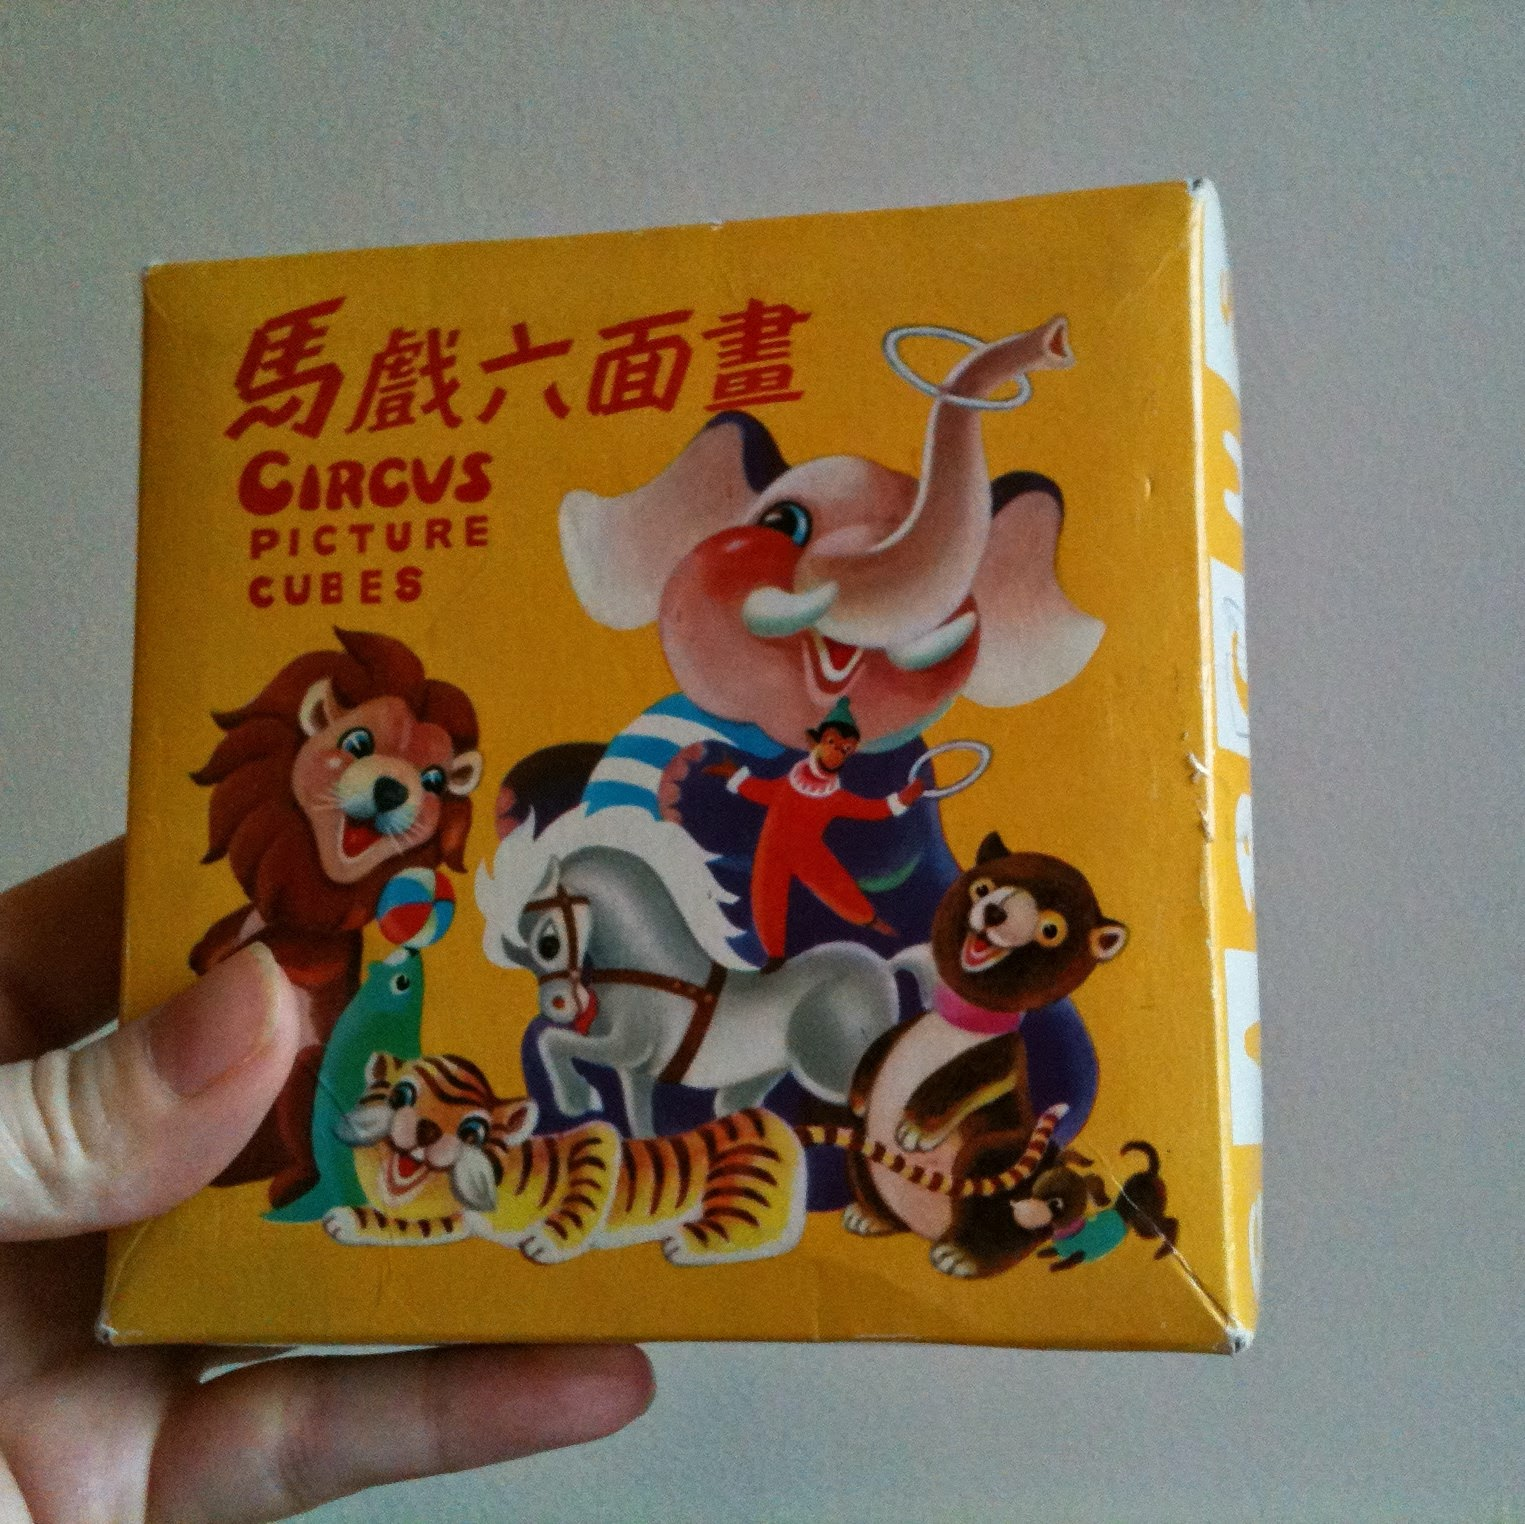 circus picture cubes blocks puzzle peoples republic of china vintage 1970s seventies toy kitsch